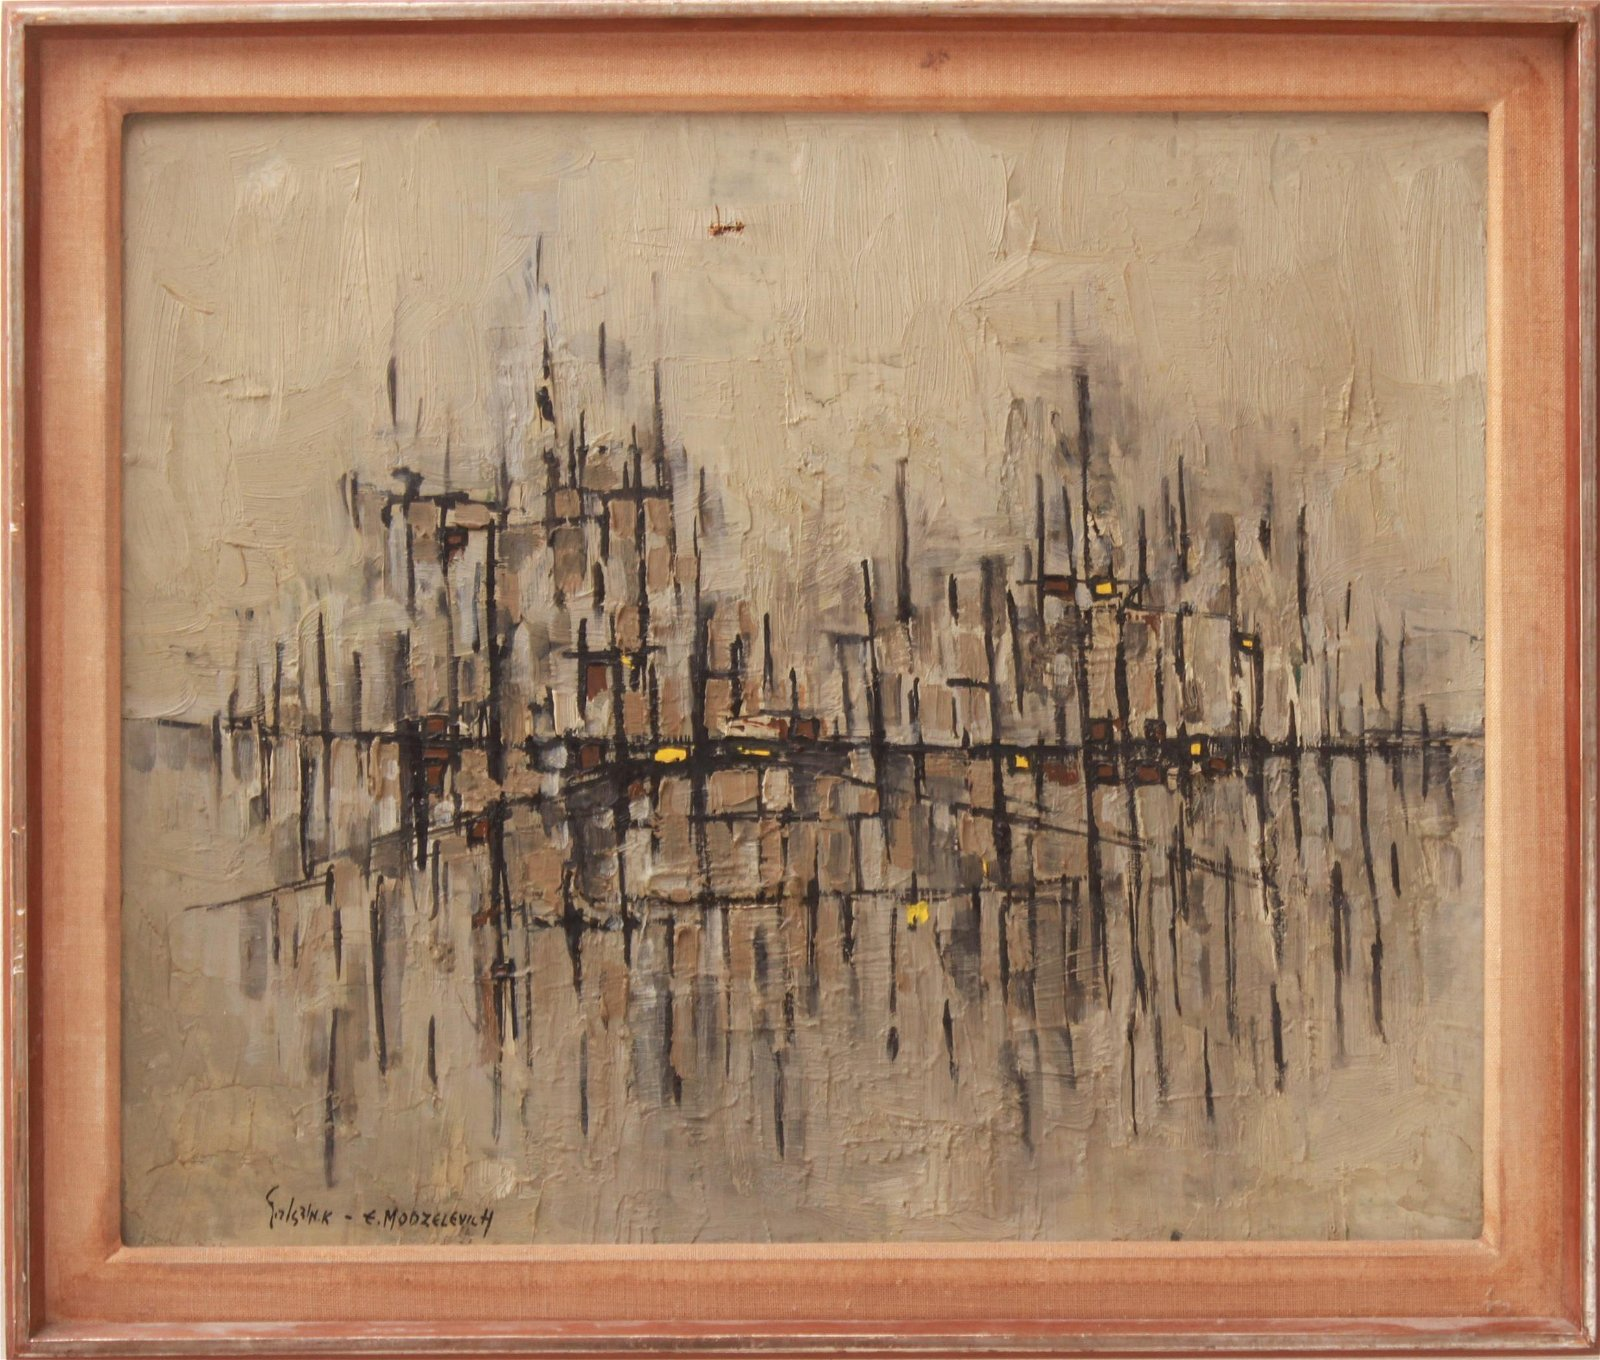 Efraim Modzelevich Abstract Oil on Canvas